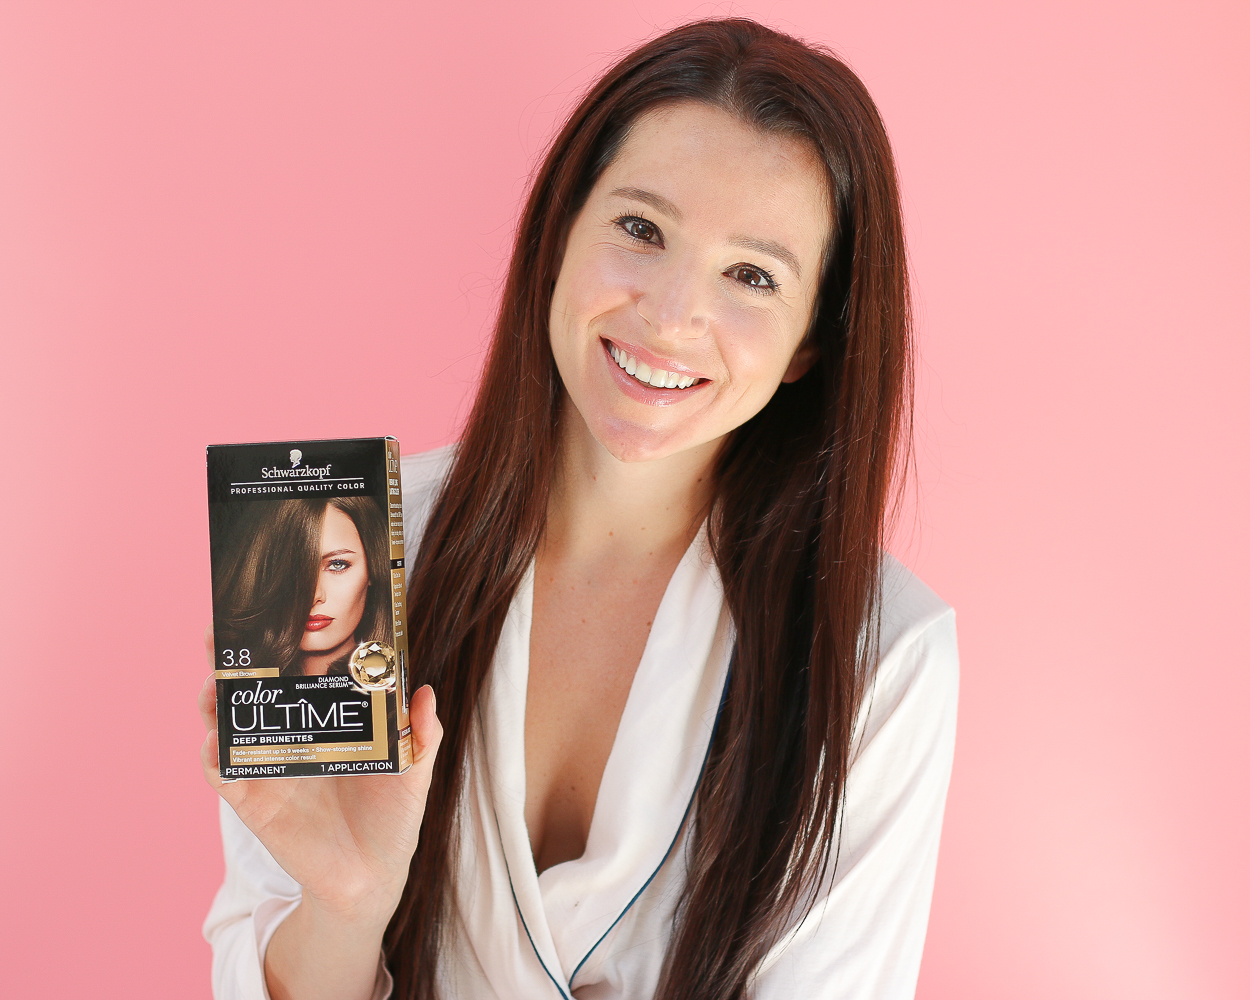 Schwarzkopf Fall Hair Refresh by popular beauty blogger Stephanie Ziajka on Diary of a Debutante, Schwarzkopf Color ULTIME in 3.8 Velvet Brown results, at home hair color tips